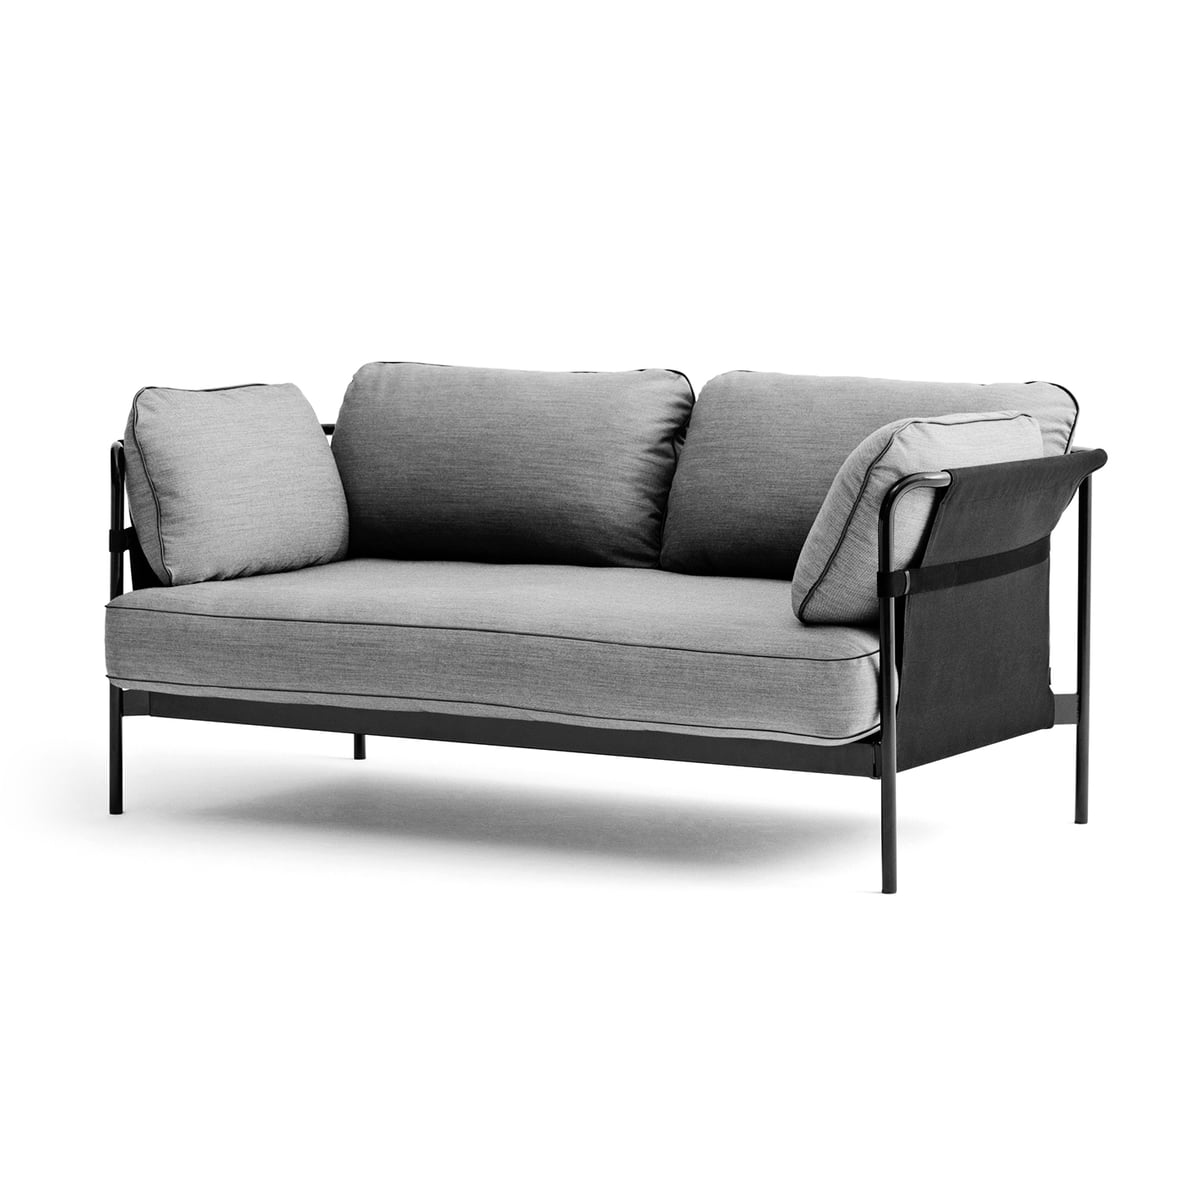 Hay - 2-seater Can Sofa